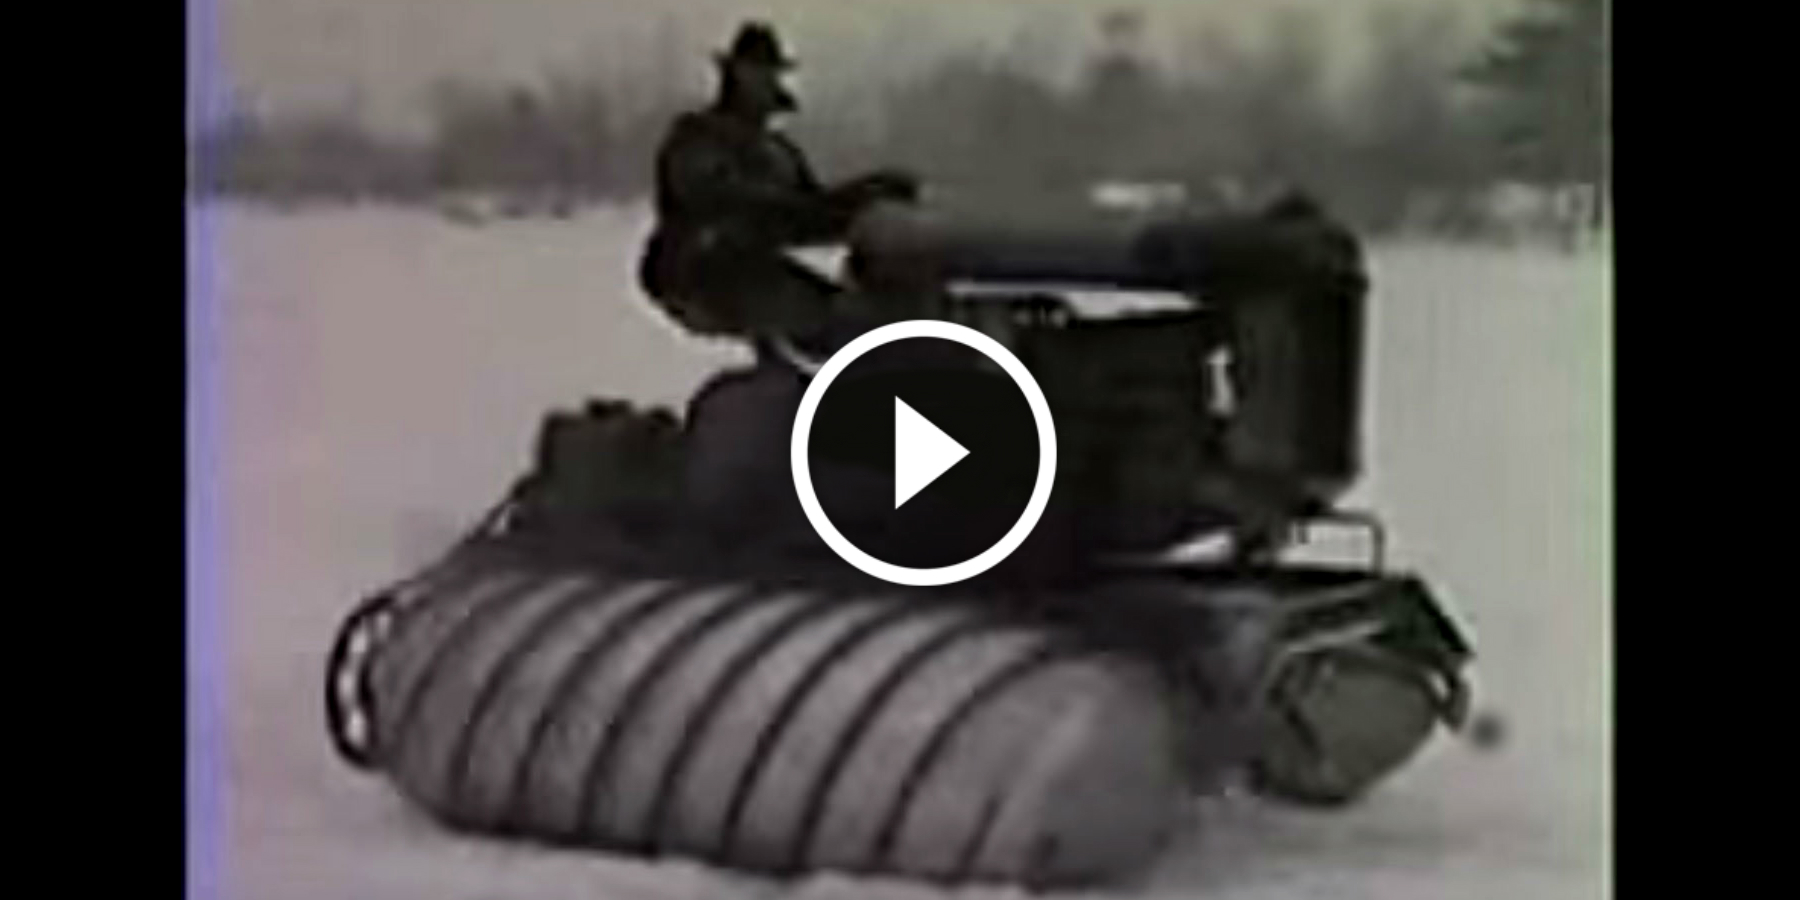 Power Wheels Tractor >> 1926 Armstead Snow Tractor Vehicle! Why They Didn't Develop It?